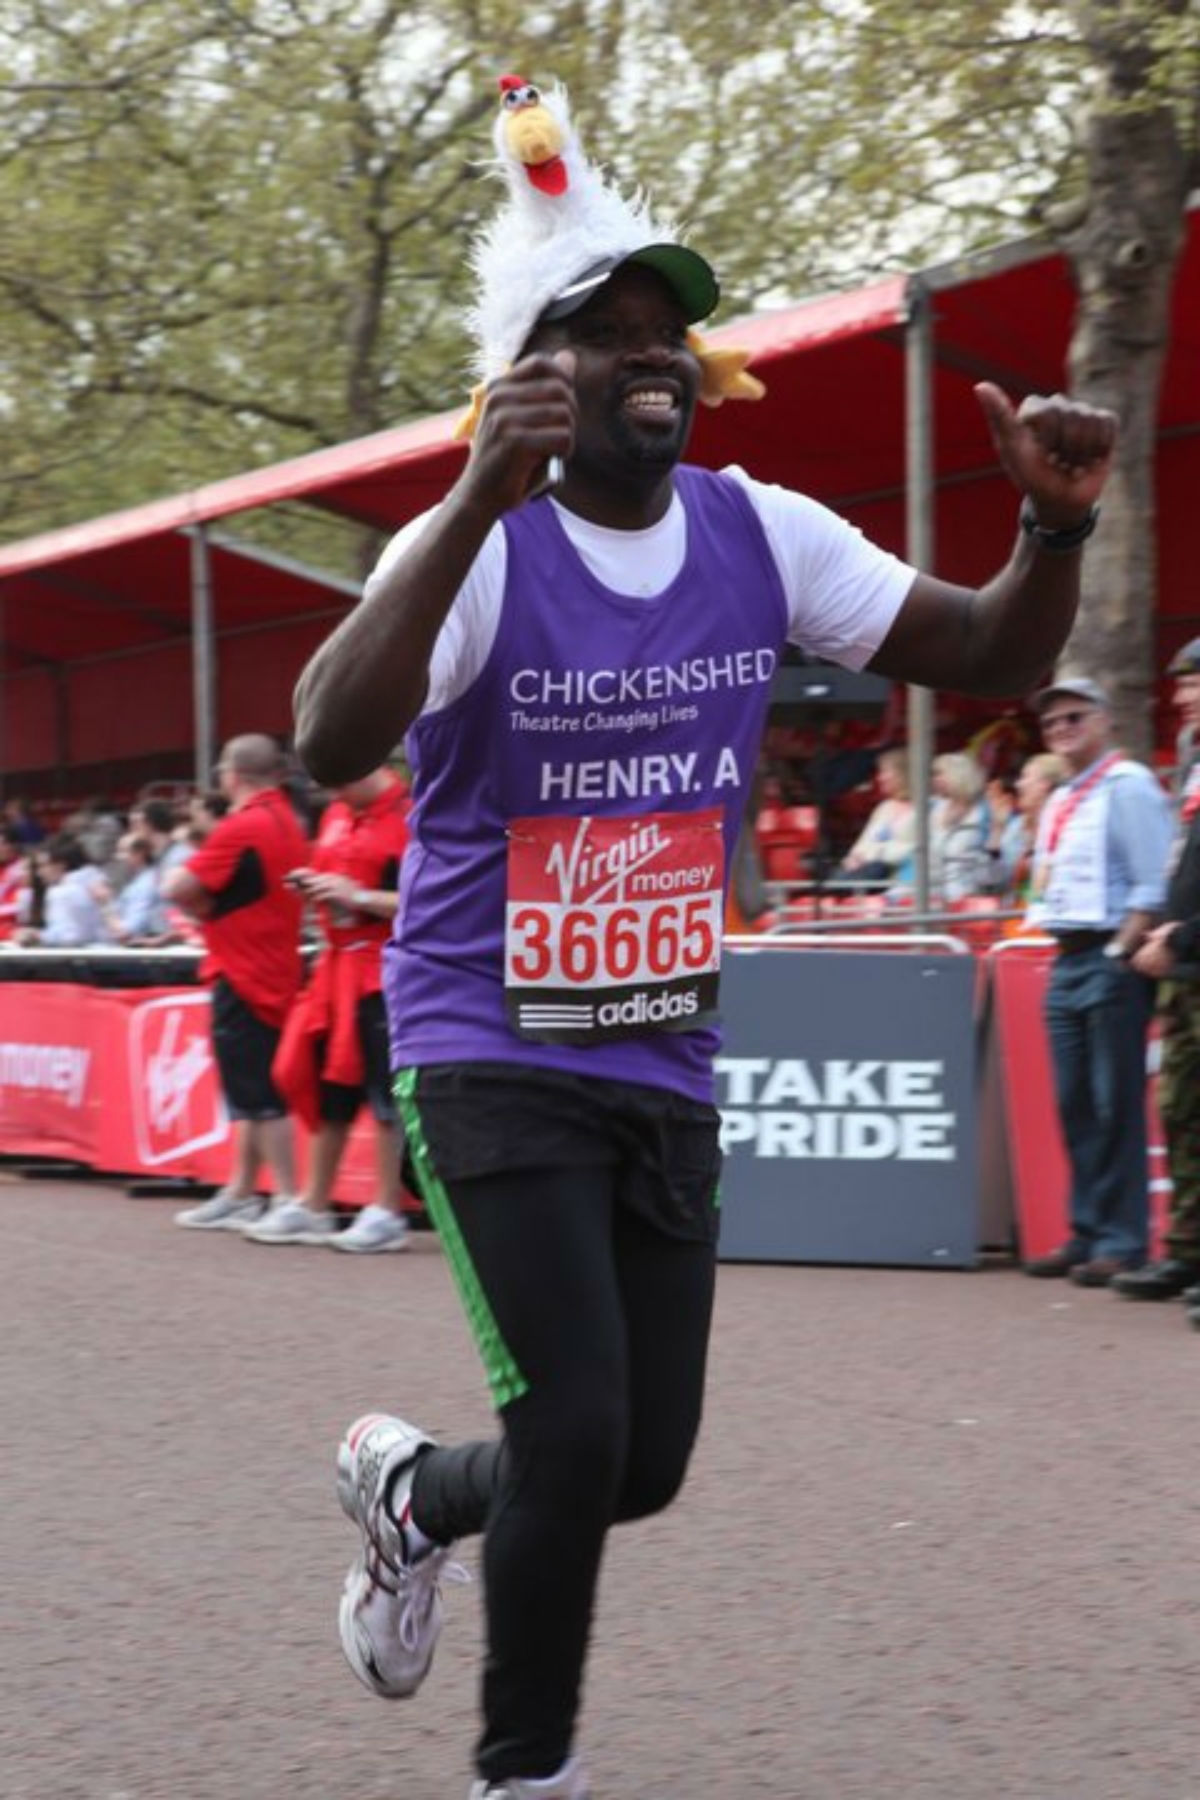 Mr Lutaaya has raised money for Chickenshed at the last two marathons